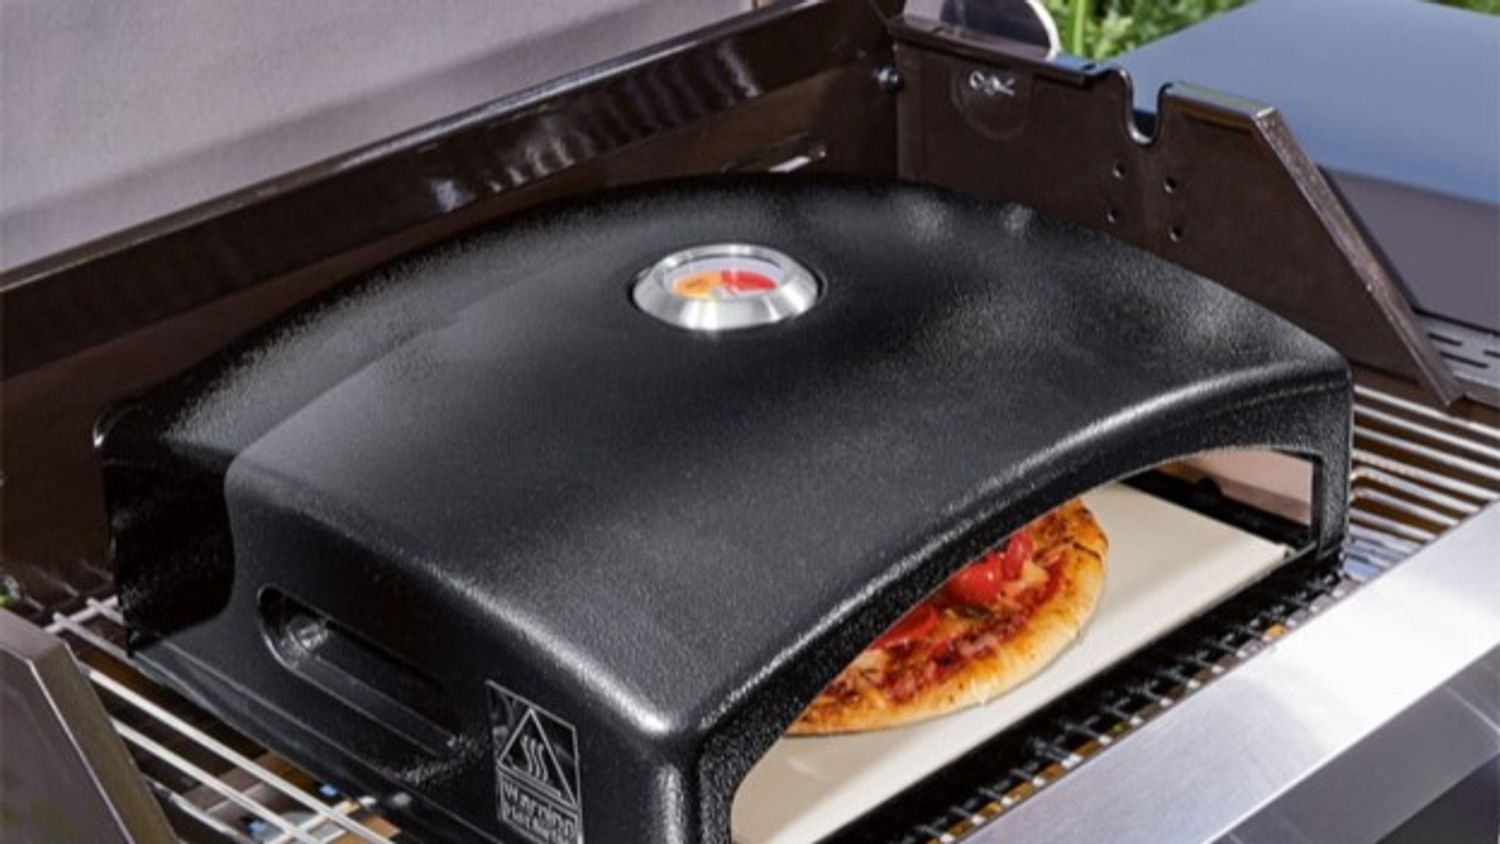 Lidl four à pizza barbecue